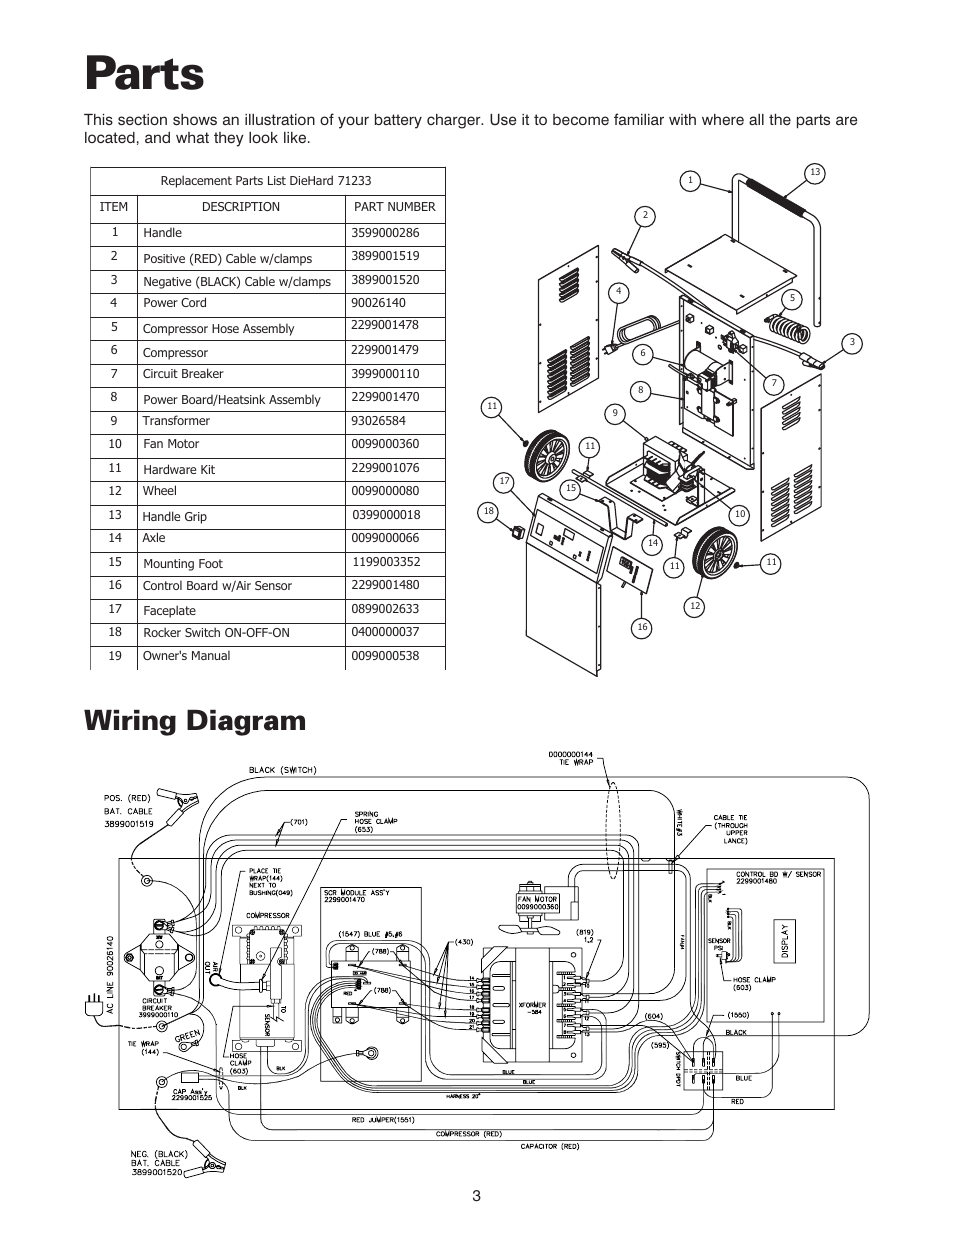 Parts, Wiring diagram | Sears 200.71233 User Manual | Page 4 / 15Manuals Directory